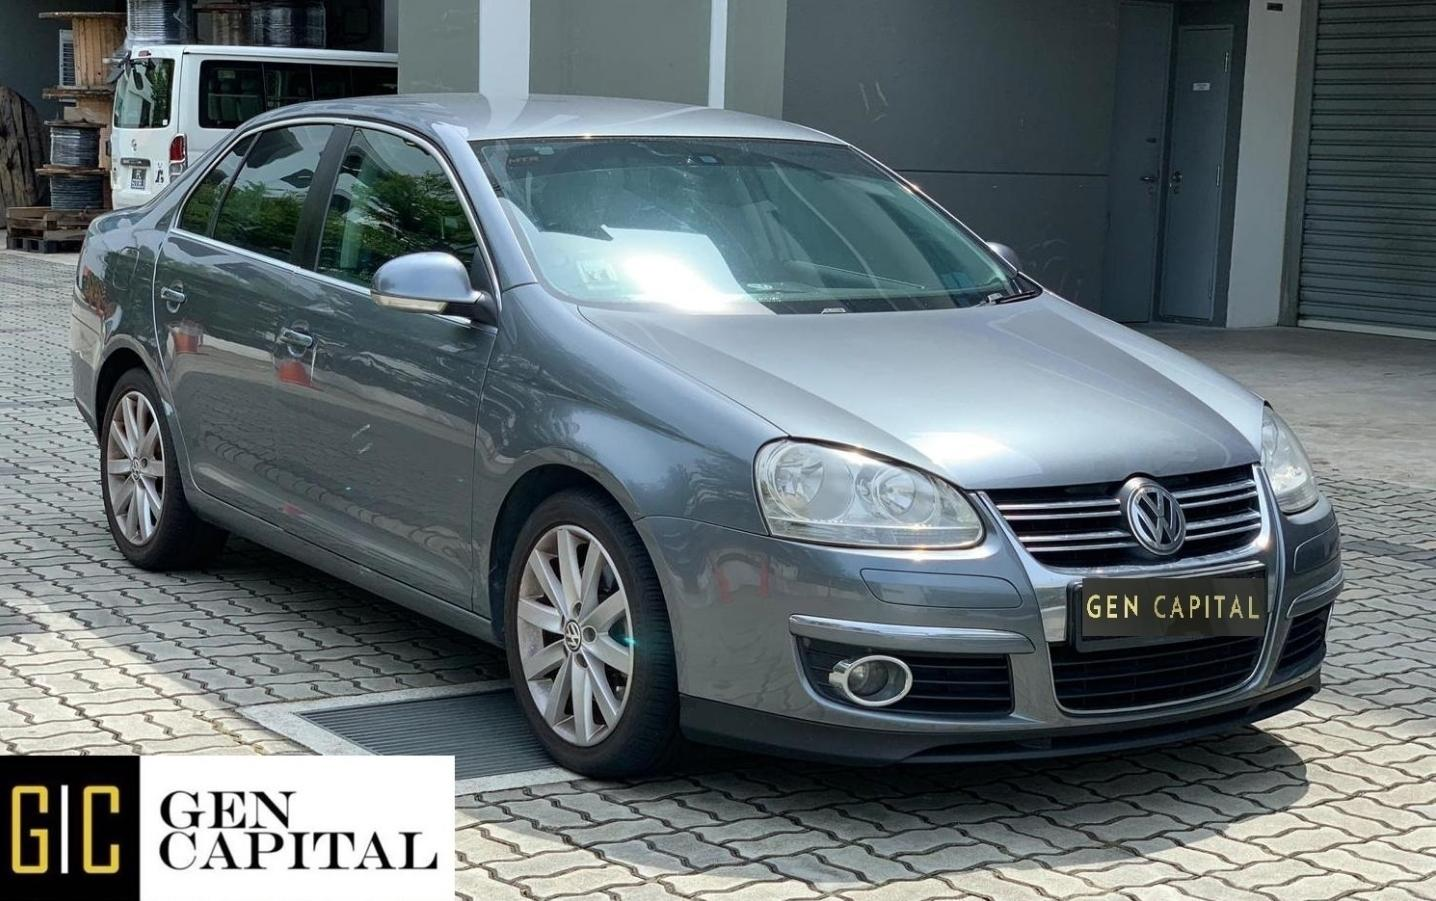 Volkswagen Jetta 1.4A @ Cheapest rates, full support!